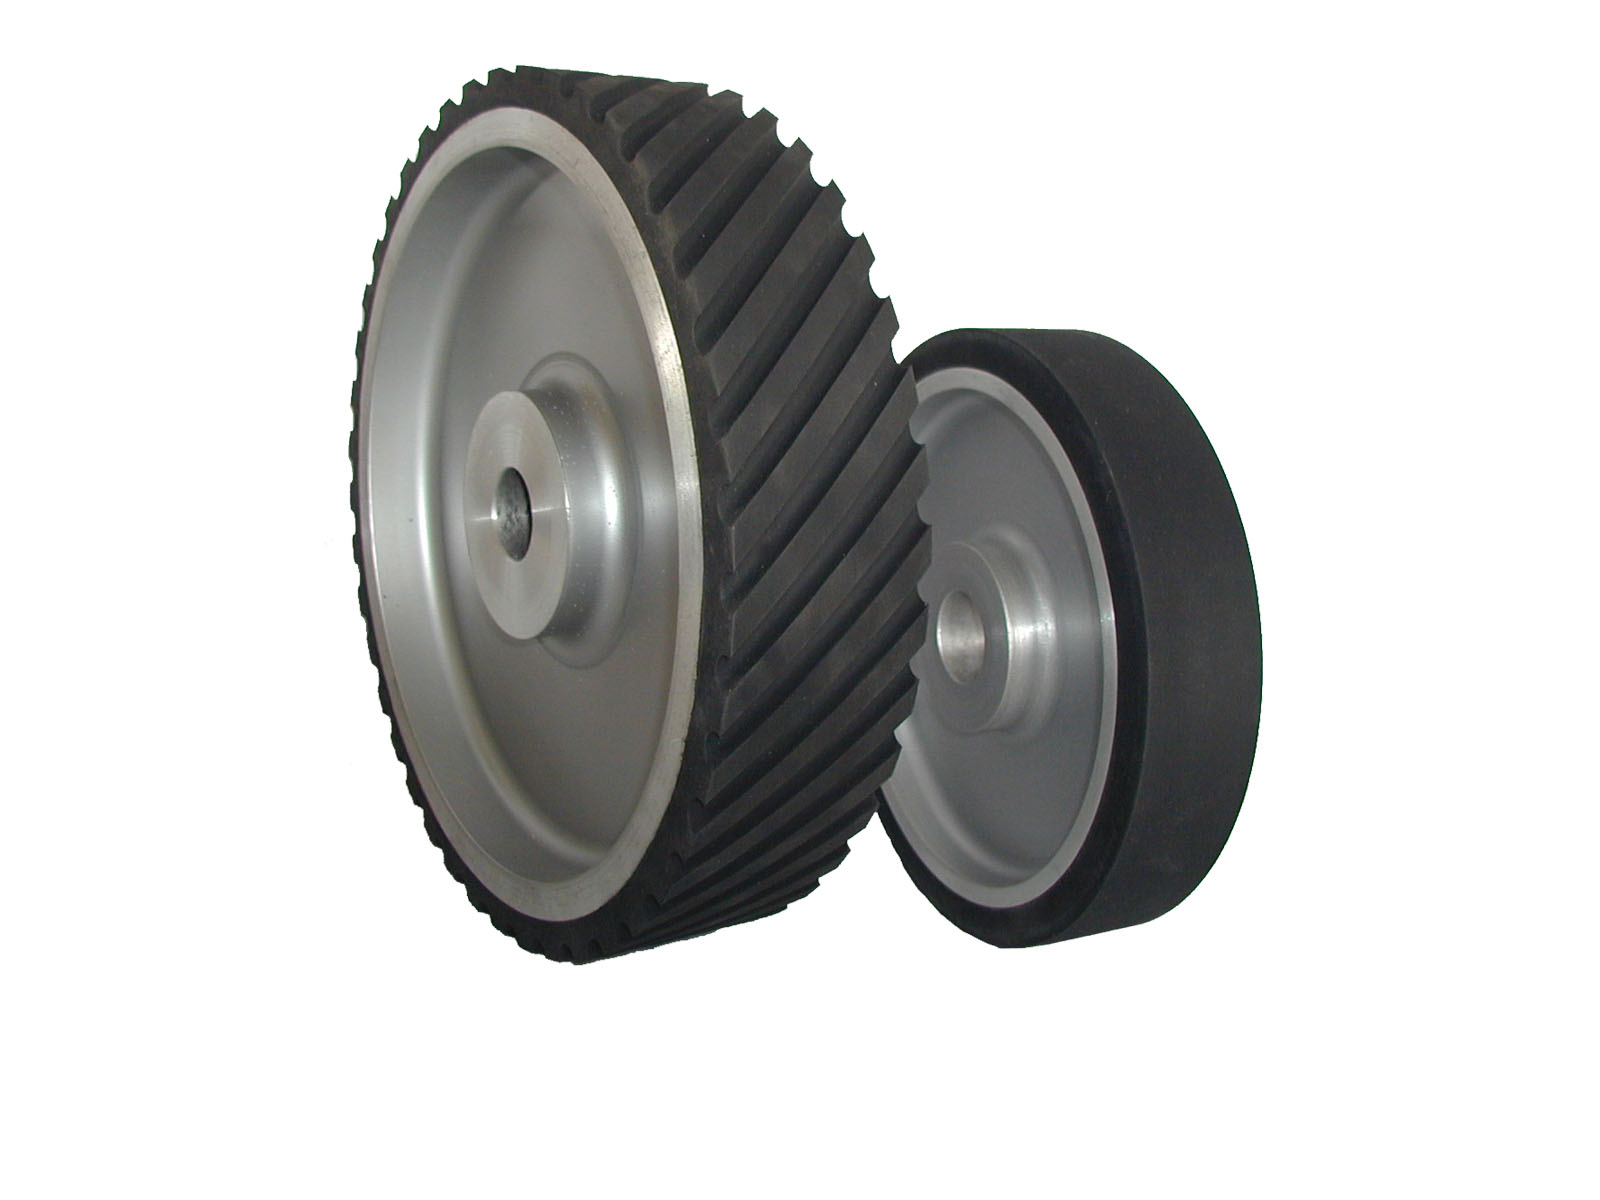 Neoprene Serrated 1 Inch Wide Contact Wheel Stephen Bader